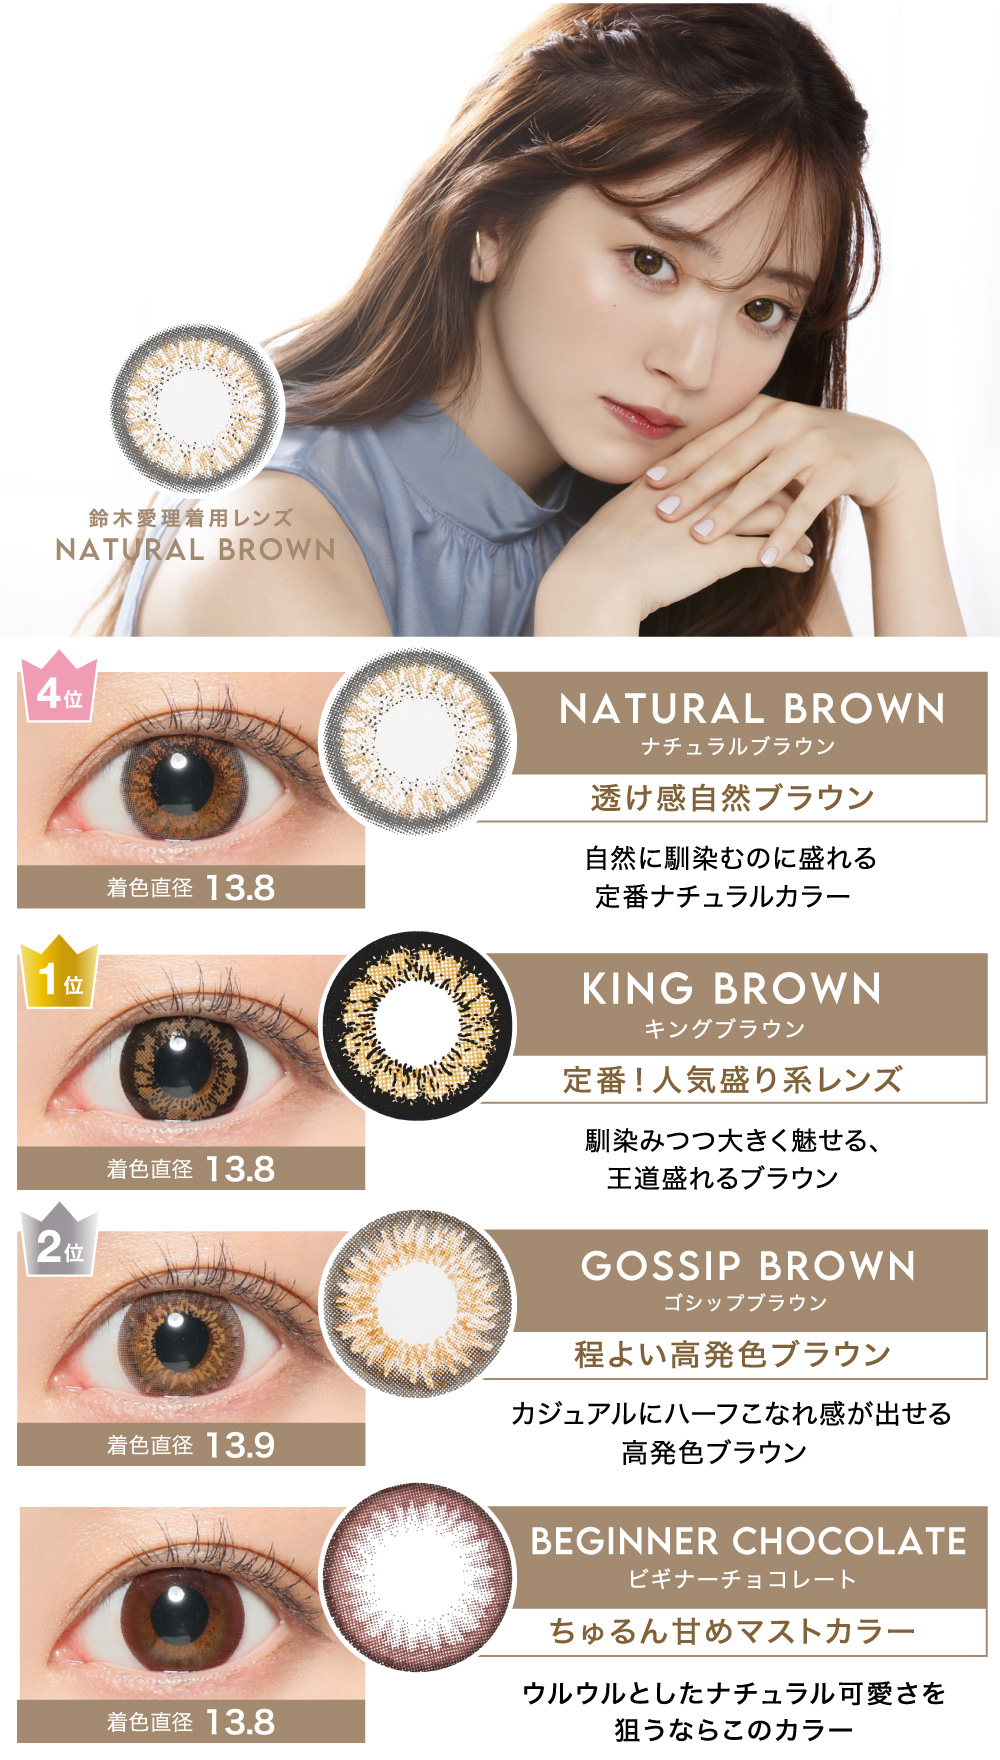 NATURAL BROWN / KING BROWN / GOSSIP BROWN / BEGINNER CHOCOLATE